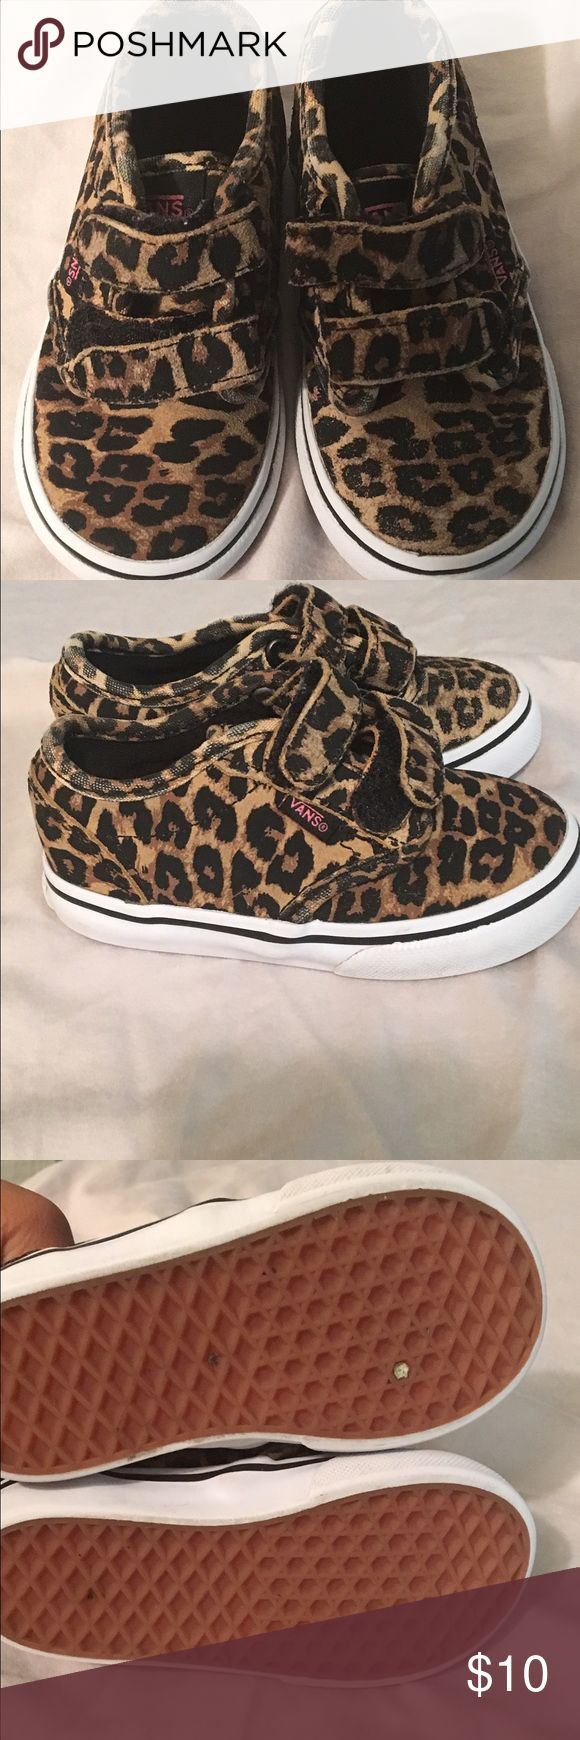 Toddler leopard Vans Great condition very trendy. Vans Shoes Sneakers